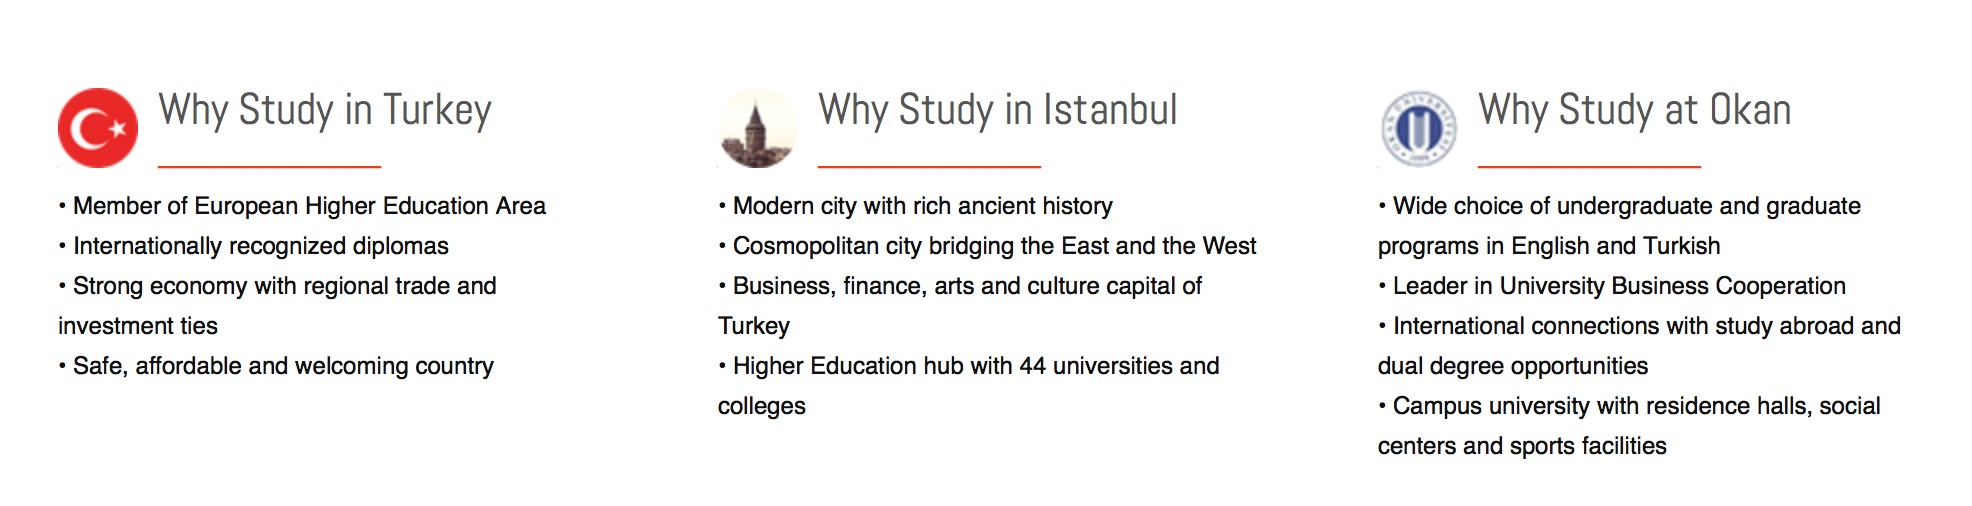 Why study at Okan